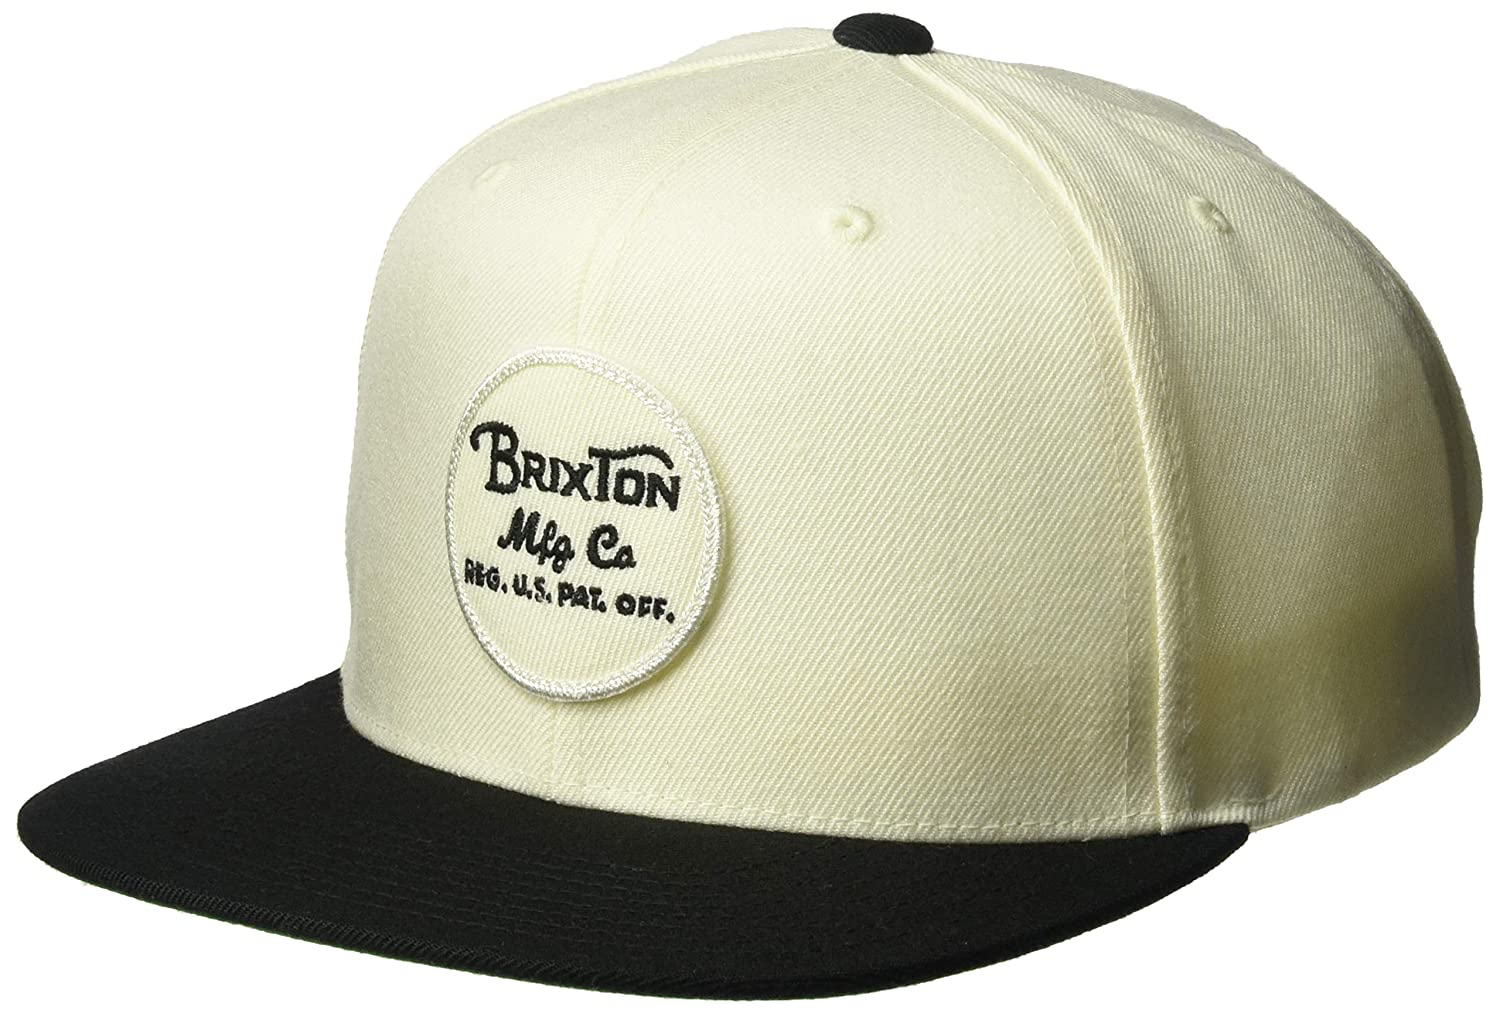 c9f6ed45fd9f4 Amazon.com  Brixton Men s Wheeler Medium Profile Adjustable Snapback ...